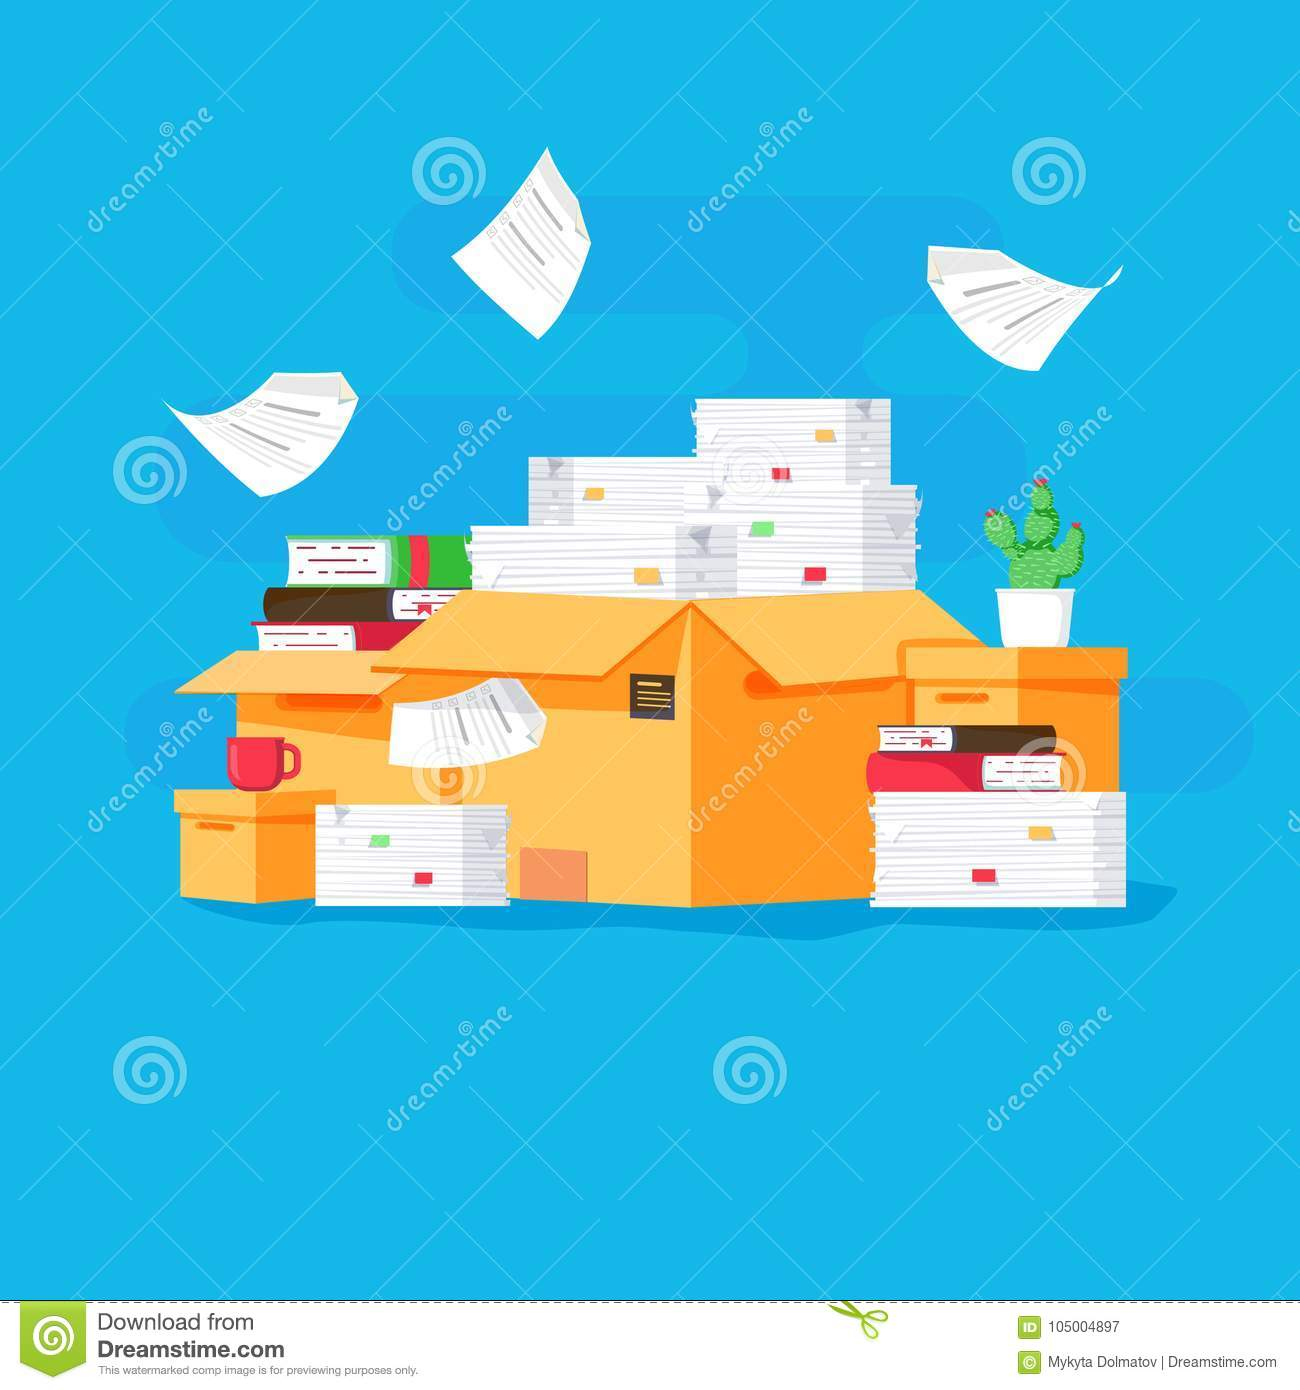 Pile of paper documents and file folders. Carton boxes. Bureaucracy, paperwork, office. Vector illustration